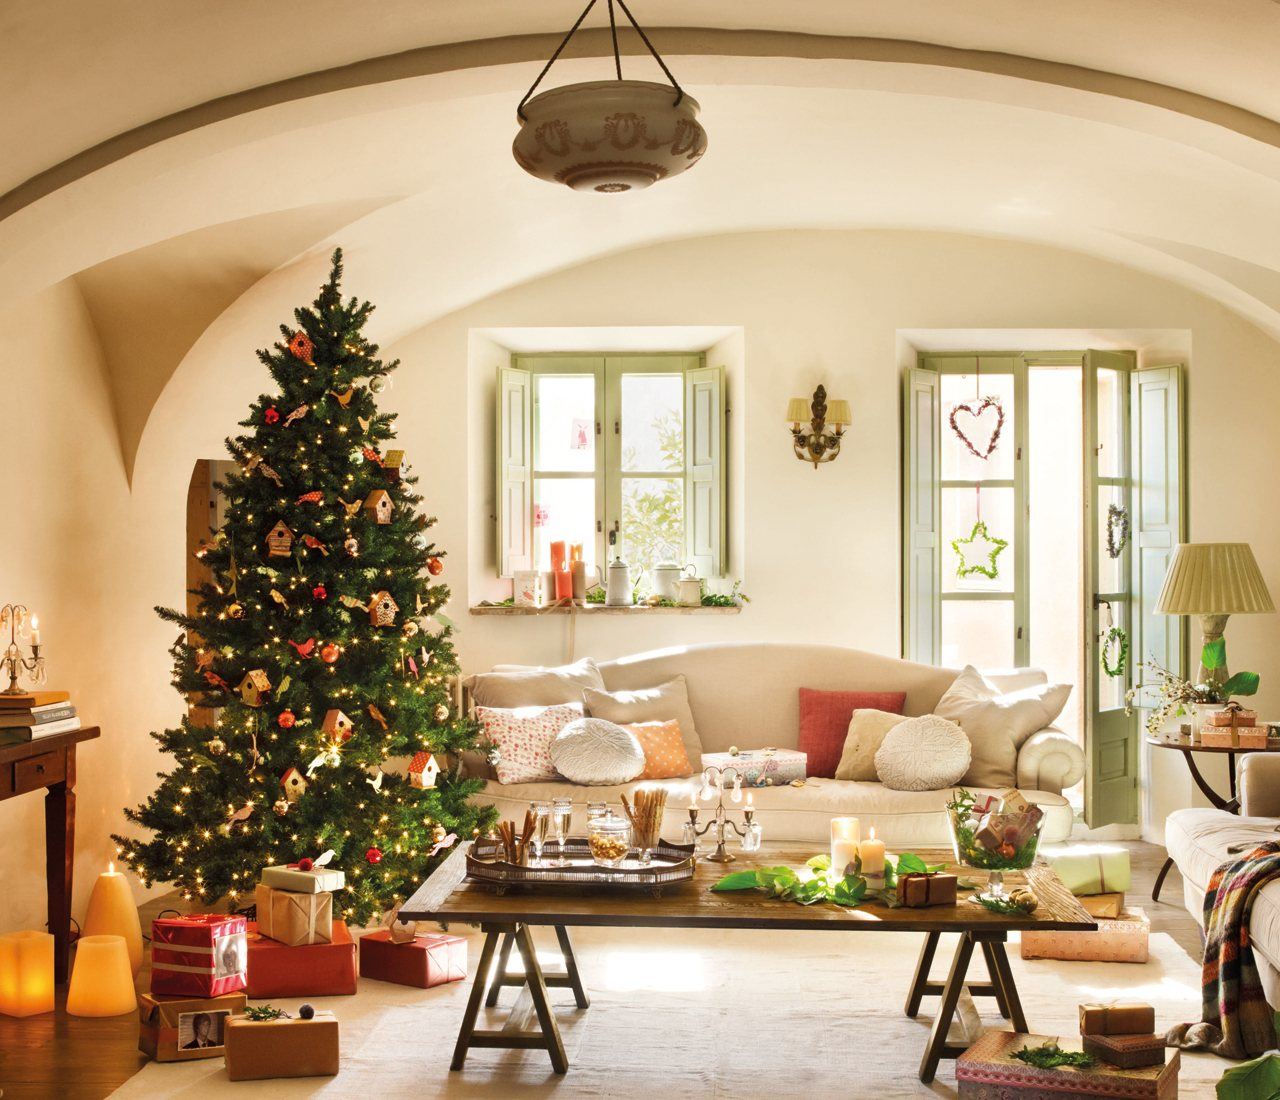 7 Ways to Save Money When You Decorate For Christmas | ArticleCube